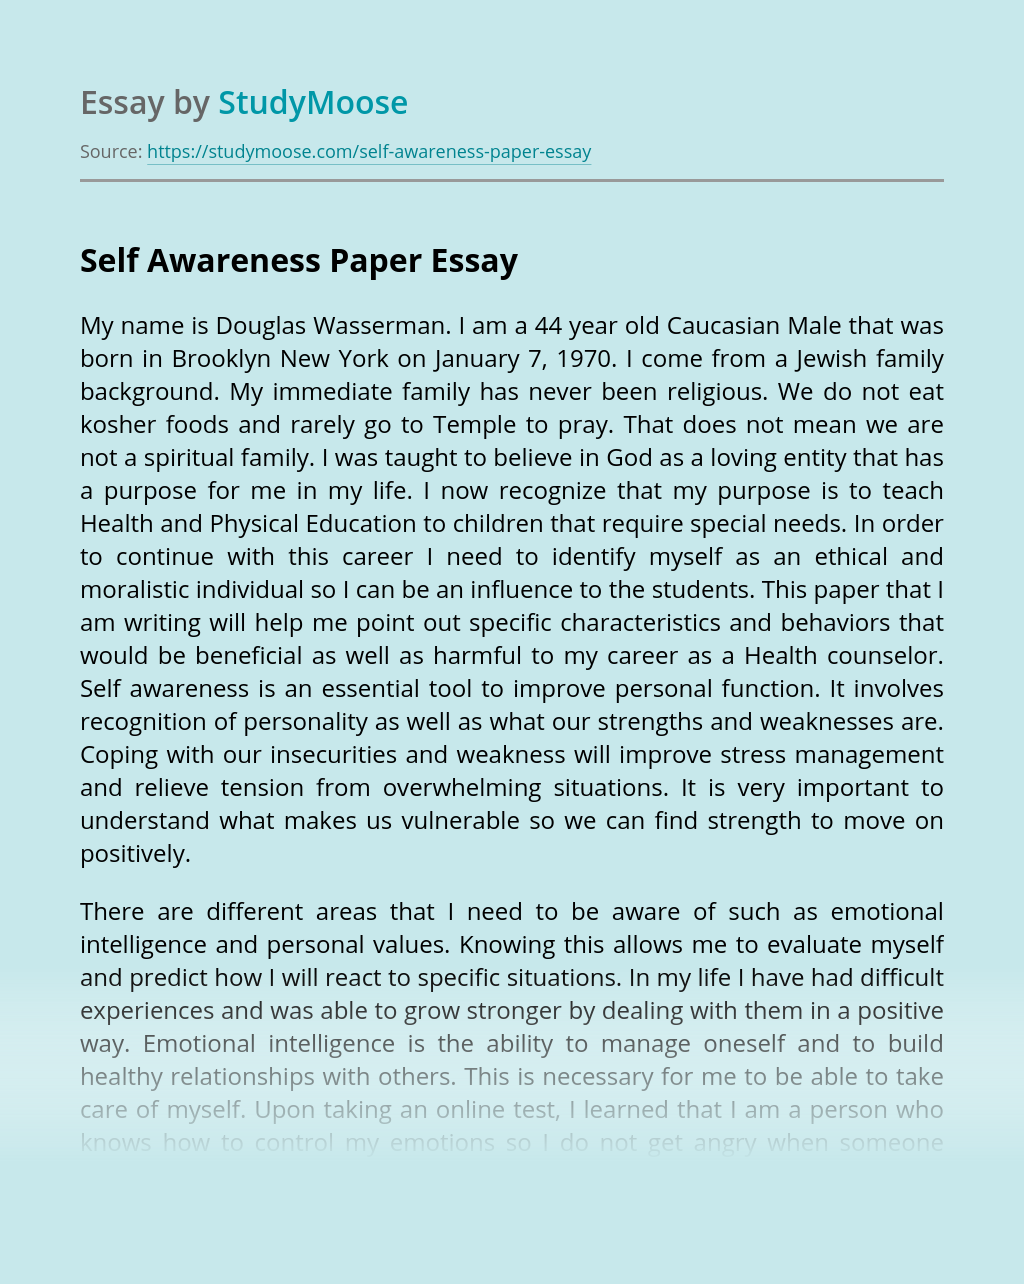 Self Awareness Paper